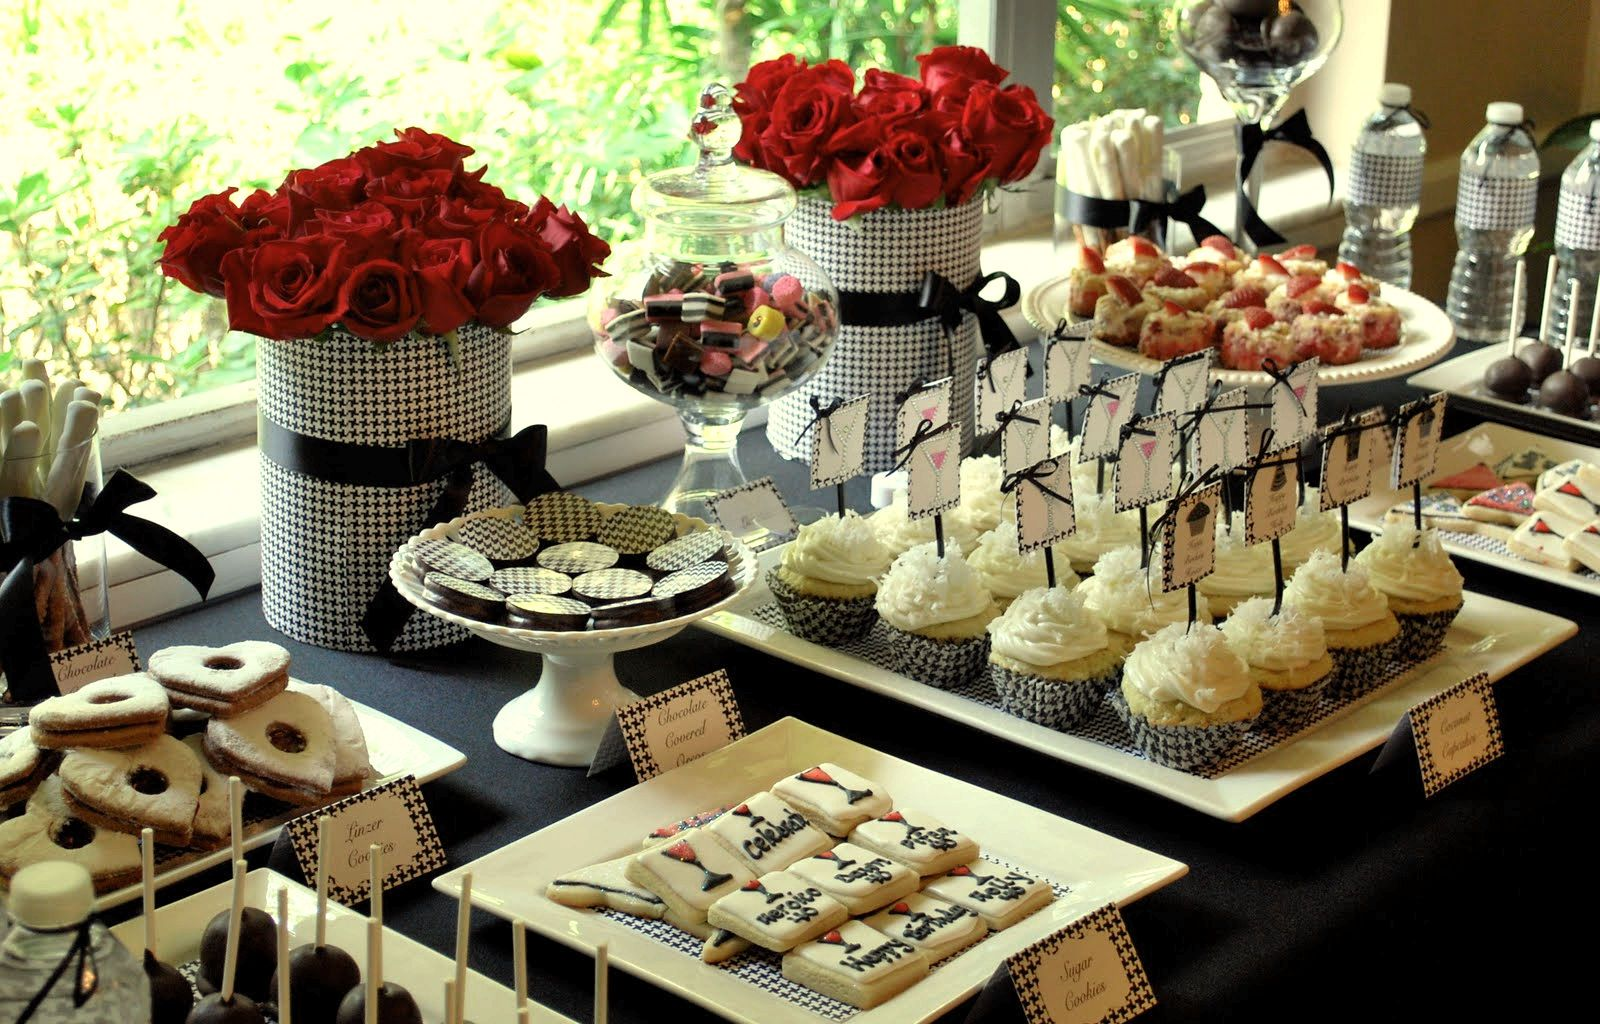 TRENDS Beautiful Dessert Tables On 40th Birthday PartiesAdult